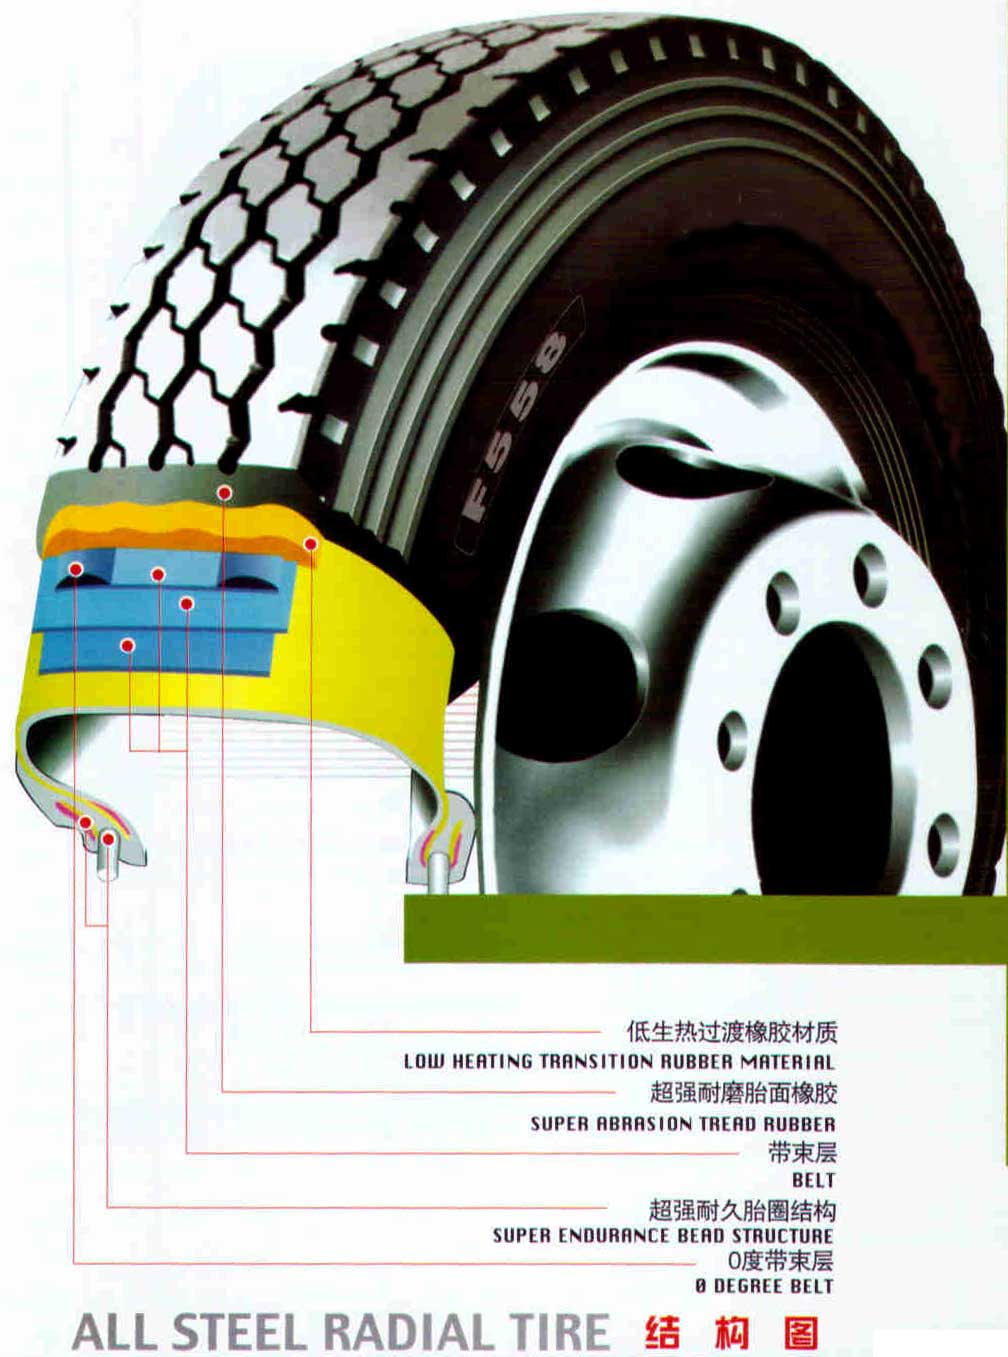 Tire Pressure Light >> RPM - Rimpex Rubber - Engineering Tyre, Heavey Duty Load ...